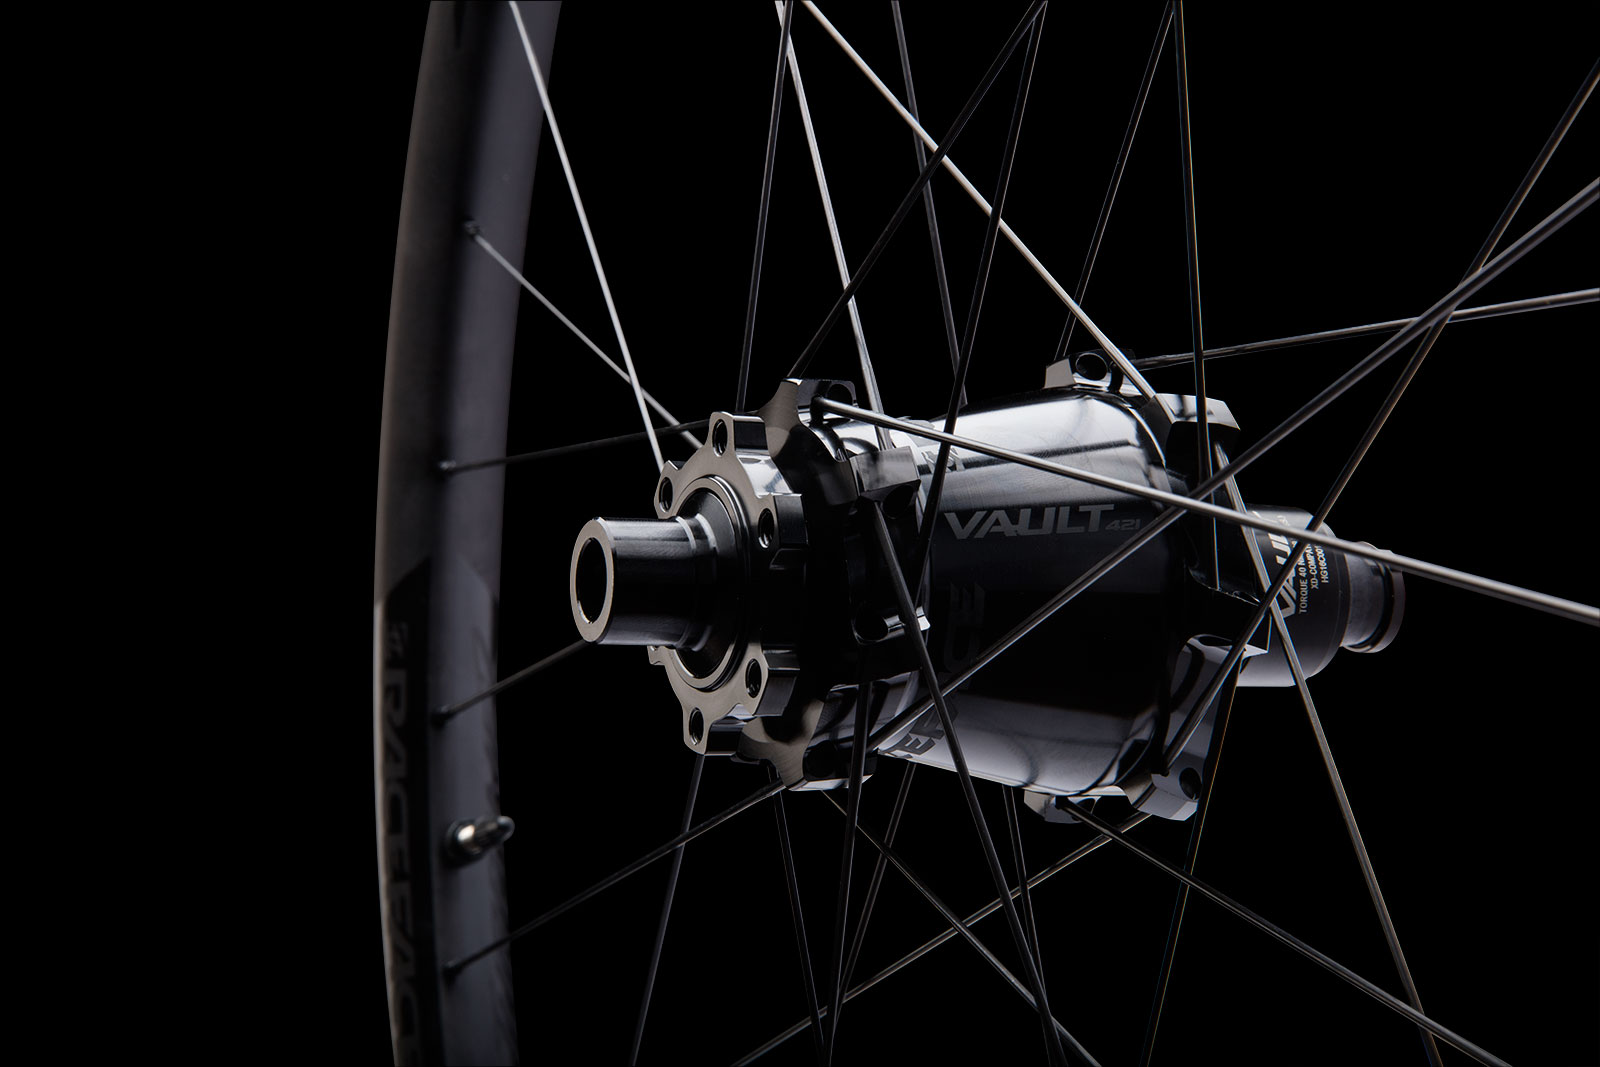 Previous Race Face wheels have been targeted at the OEM market, but the brand has firmly set its sights on the aftermarket with the new Turbine R.